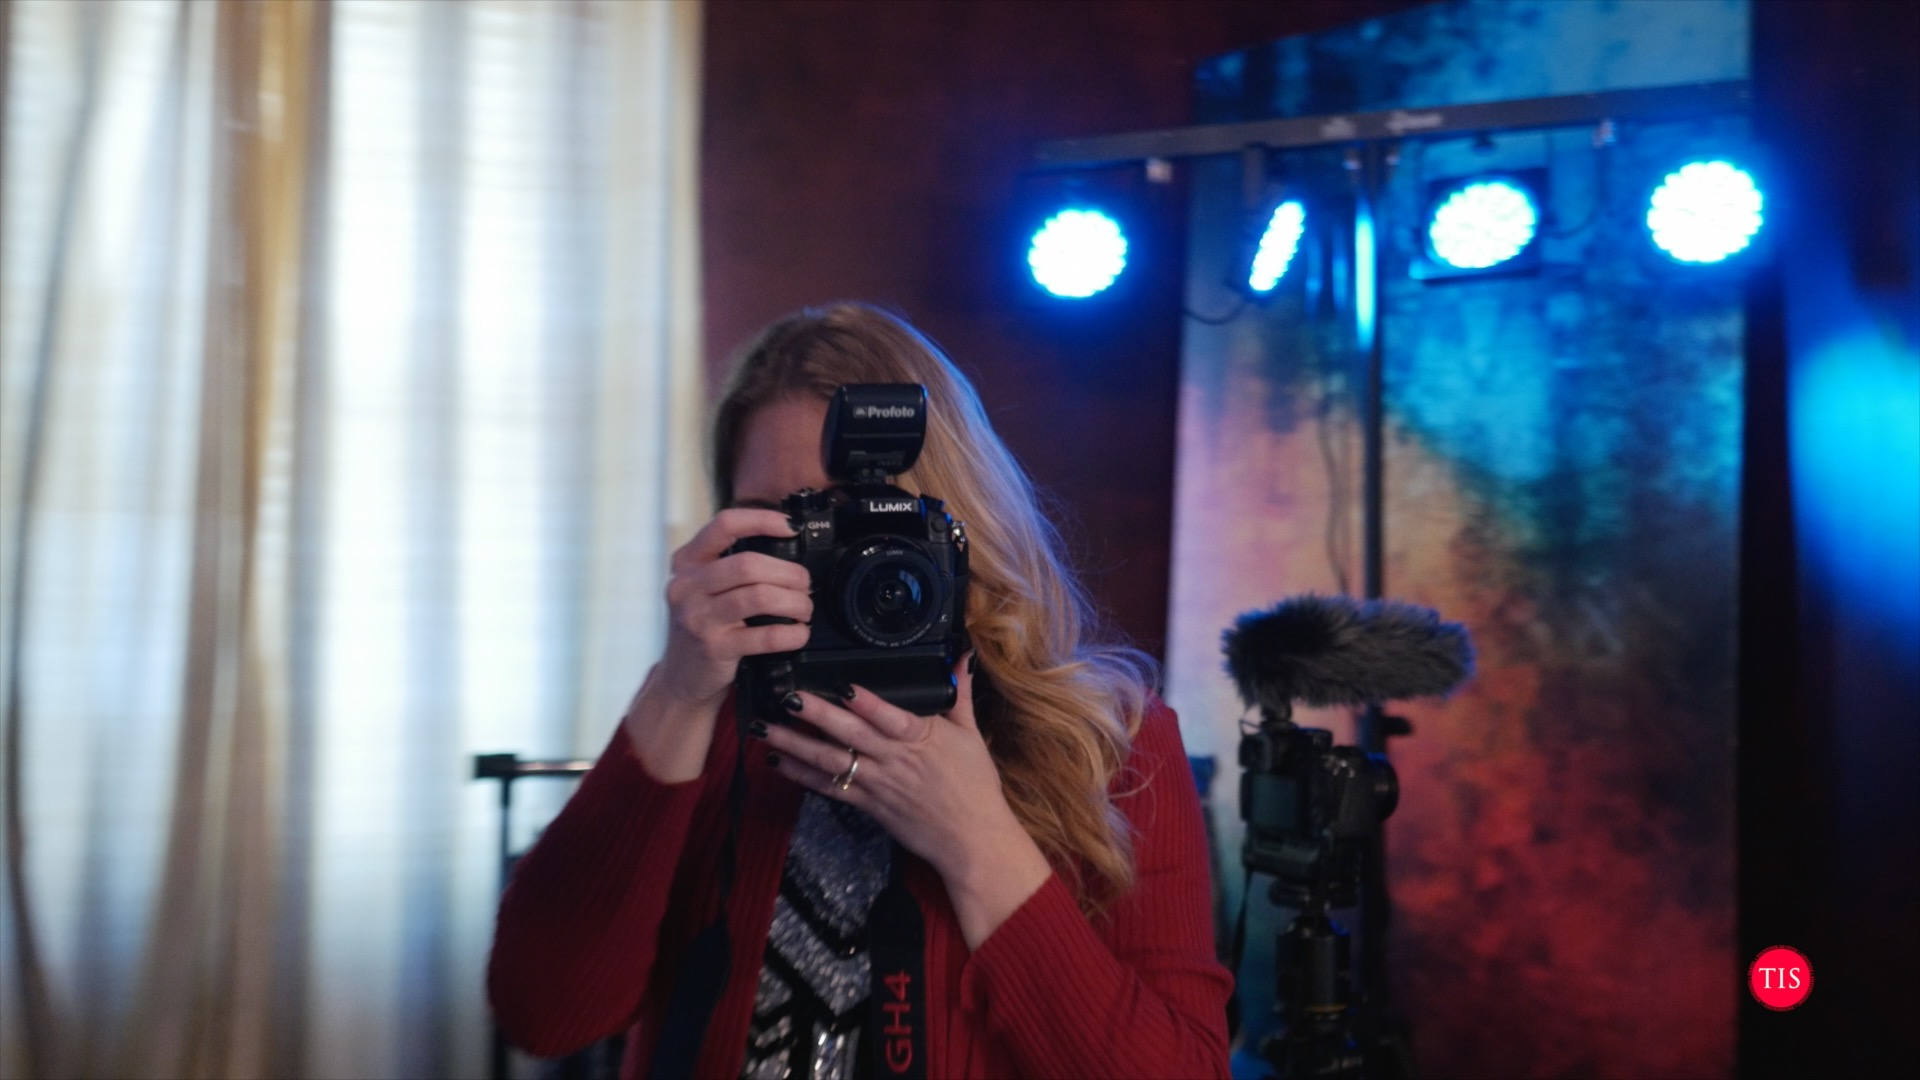 Jennifer Maring in the studio photographing with a Lumix GH4